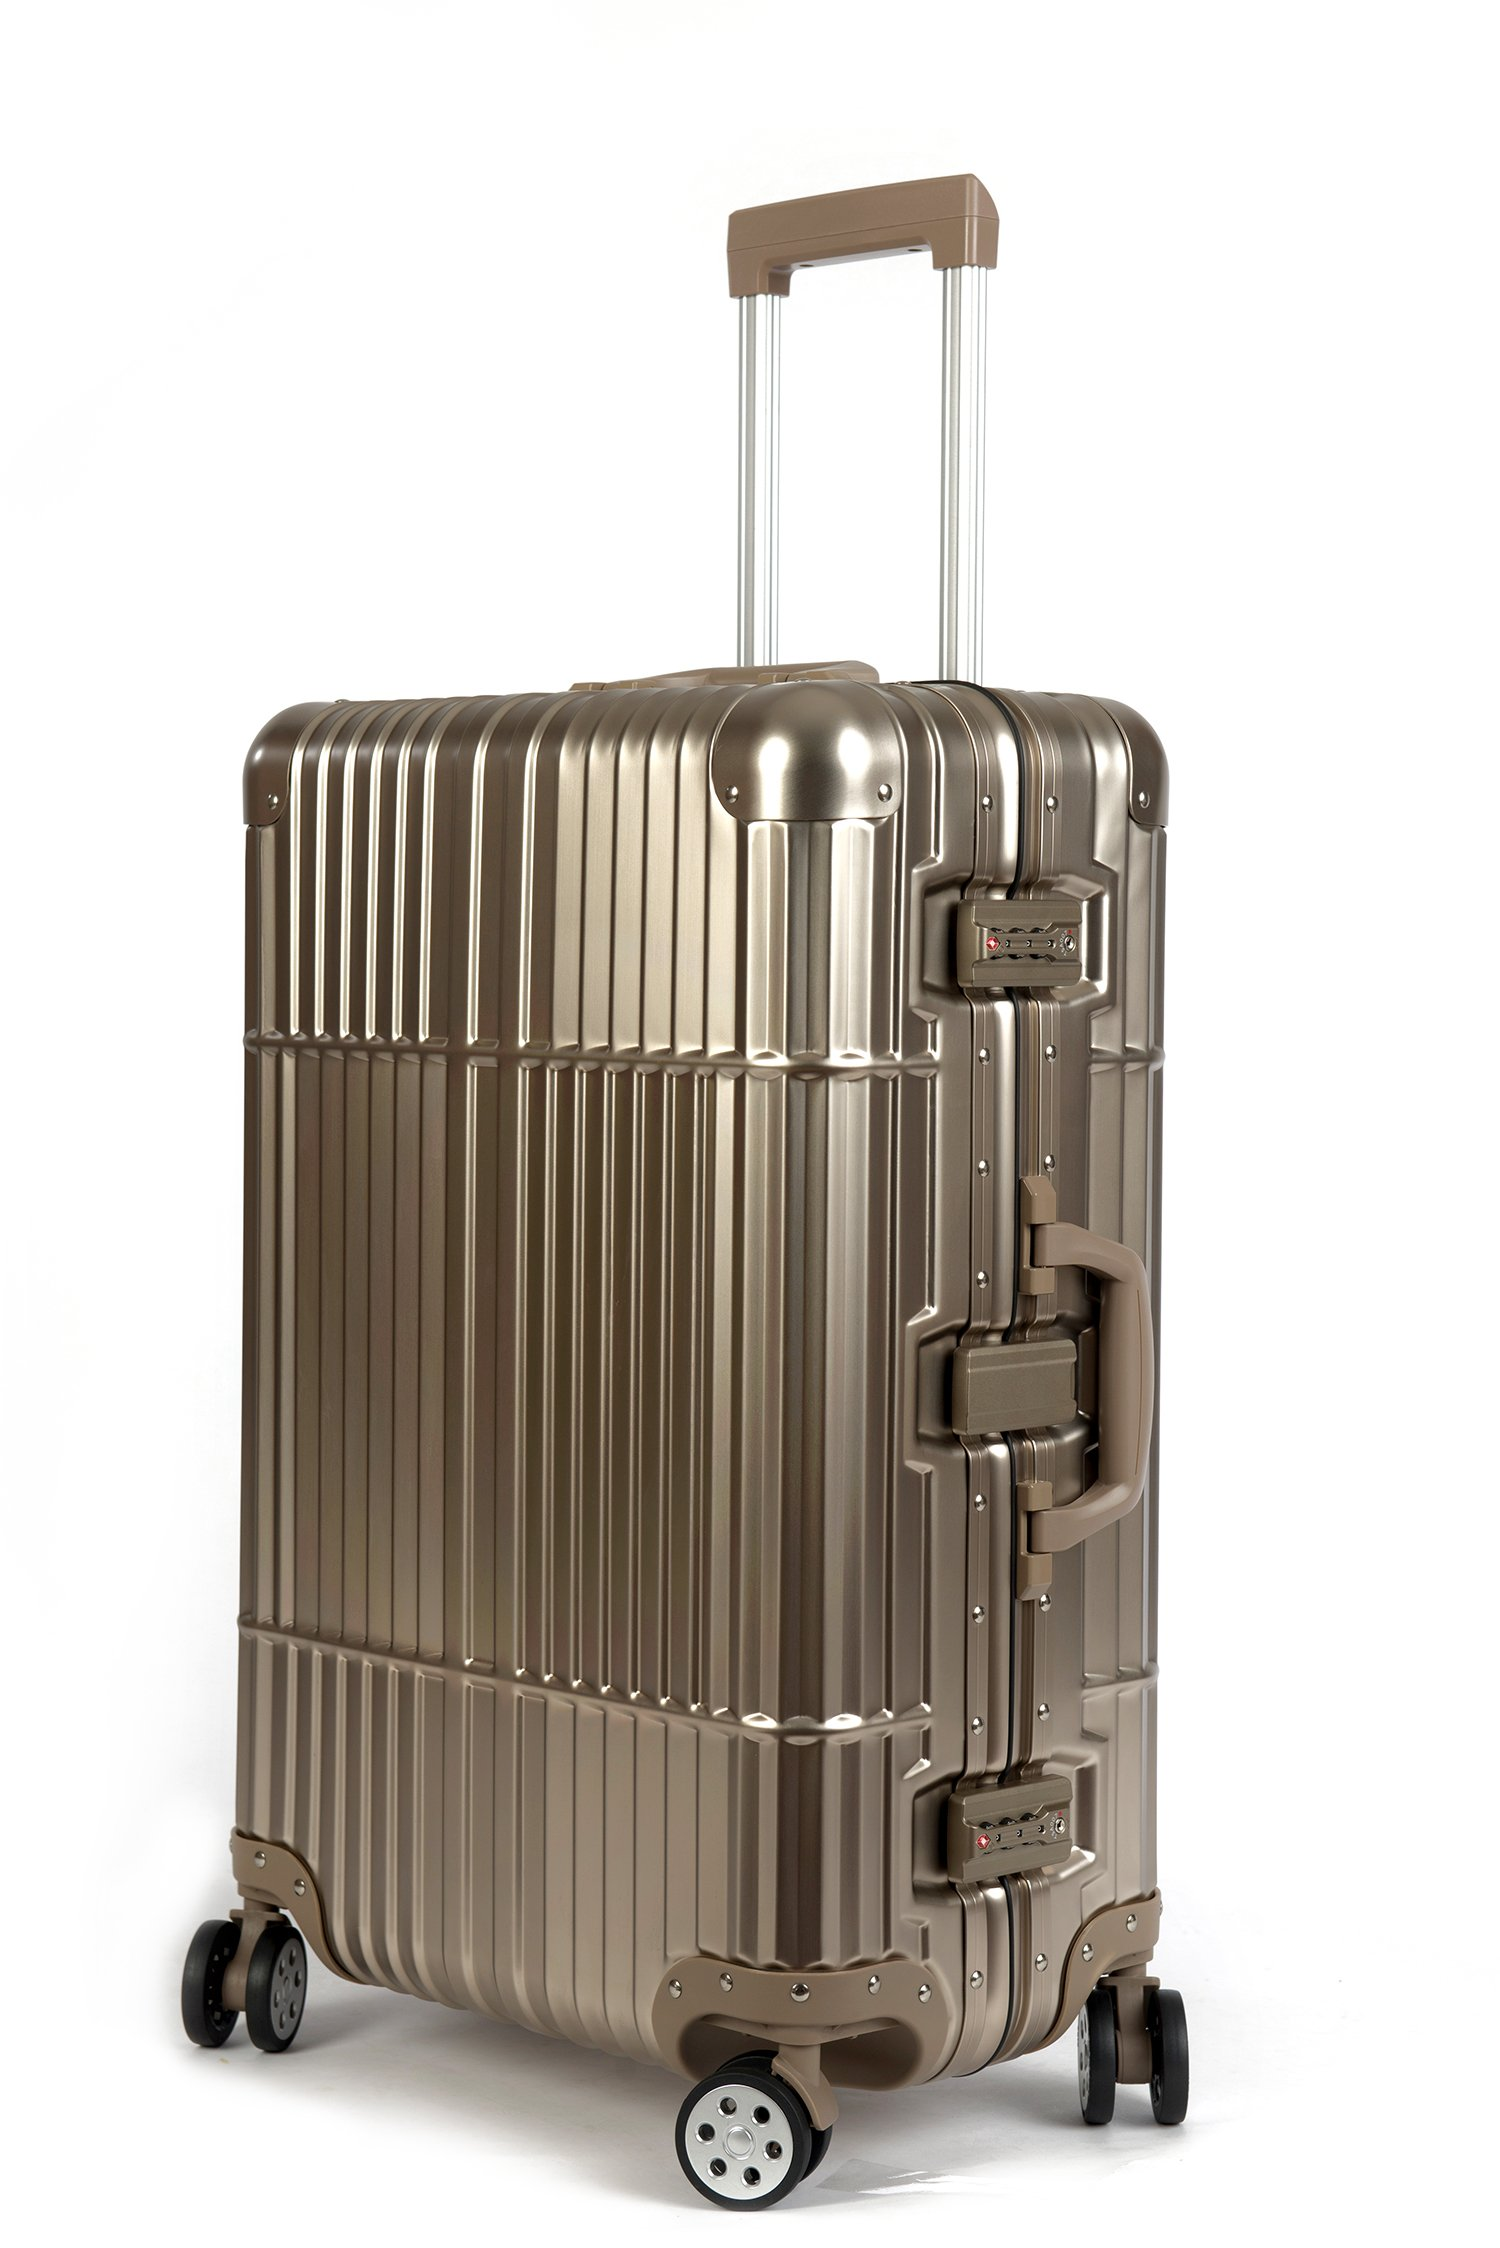 Cloud 9 - All Aluminum Luxury Hard Case Checked 24'' Durable with 360 Degree 4 Wheel Spinner TSA Approved by Newbee Fashion